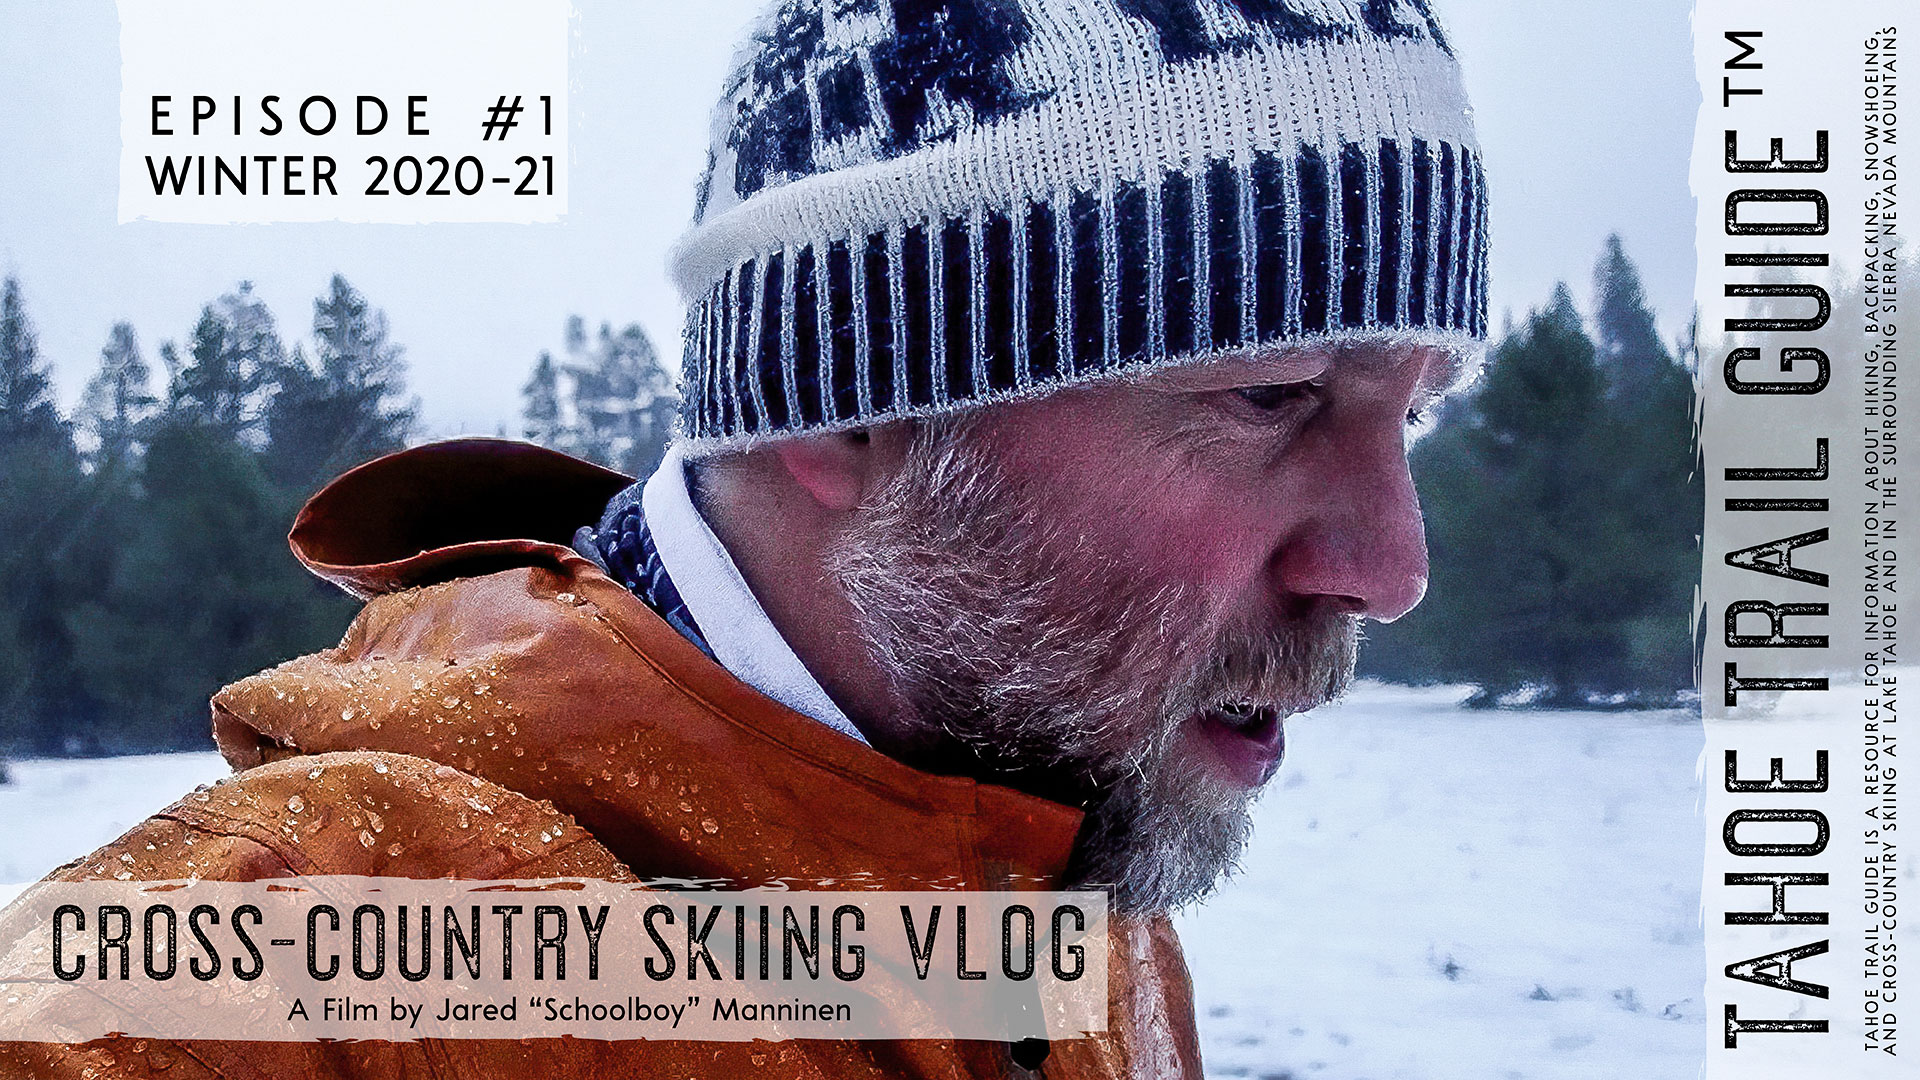 Man cross-country skiing in rainy weather